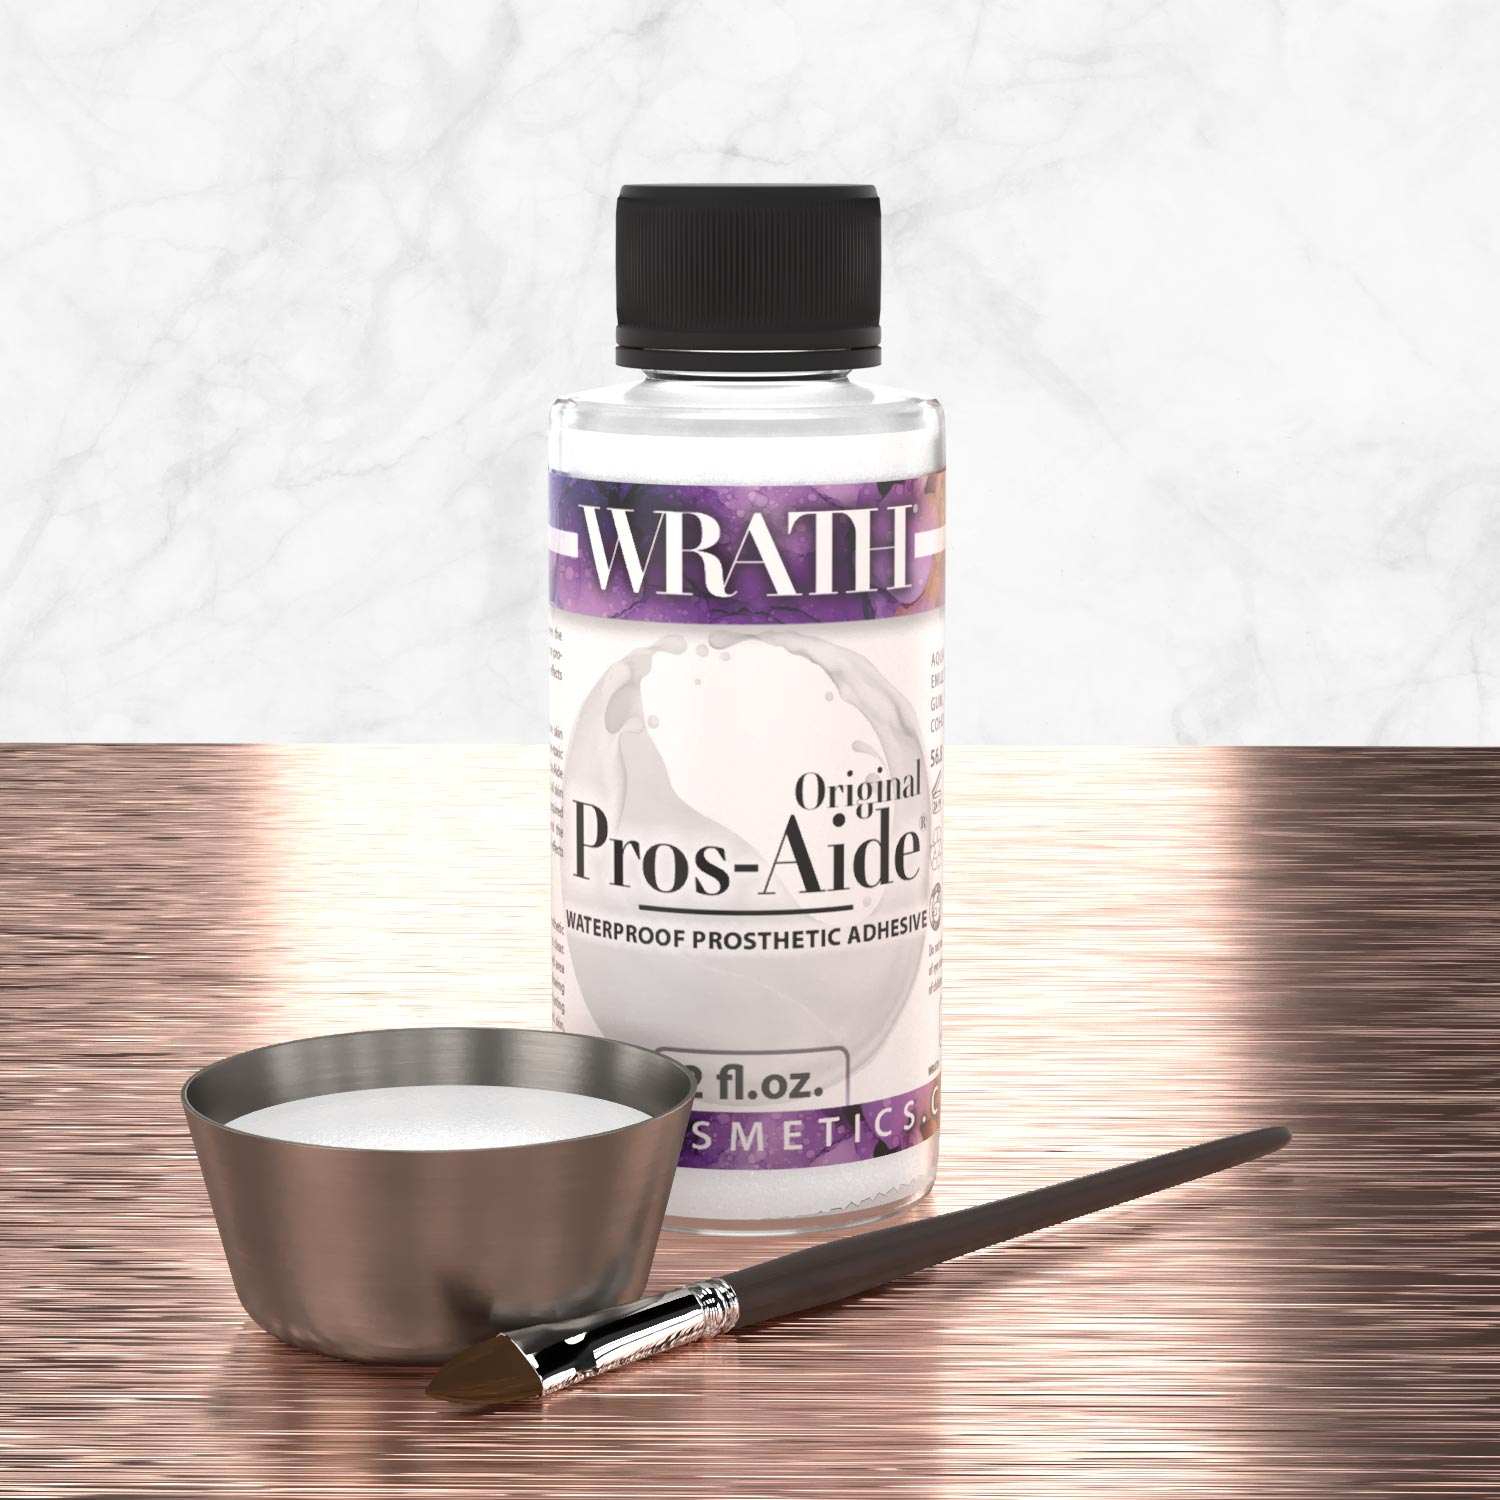 WRATH Pros-Aide® Original Prosthetic Adhesive